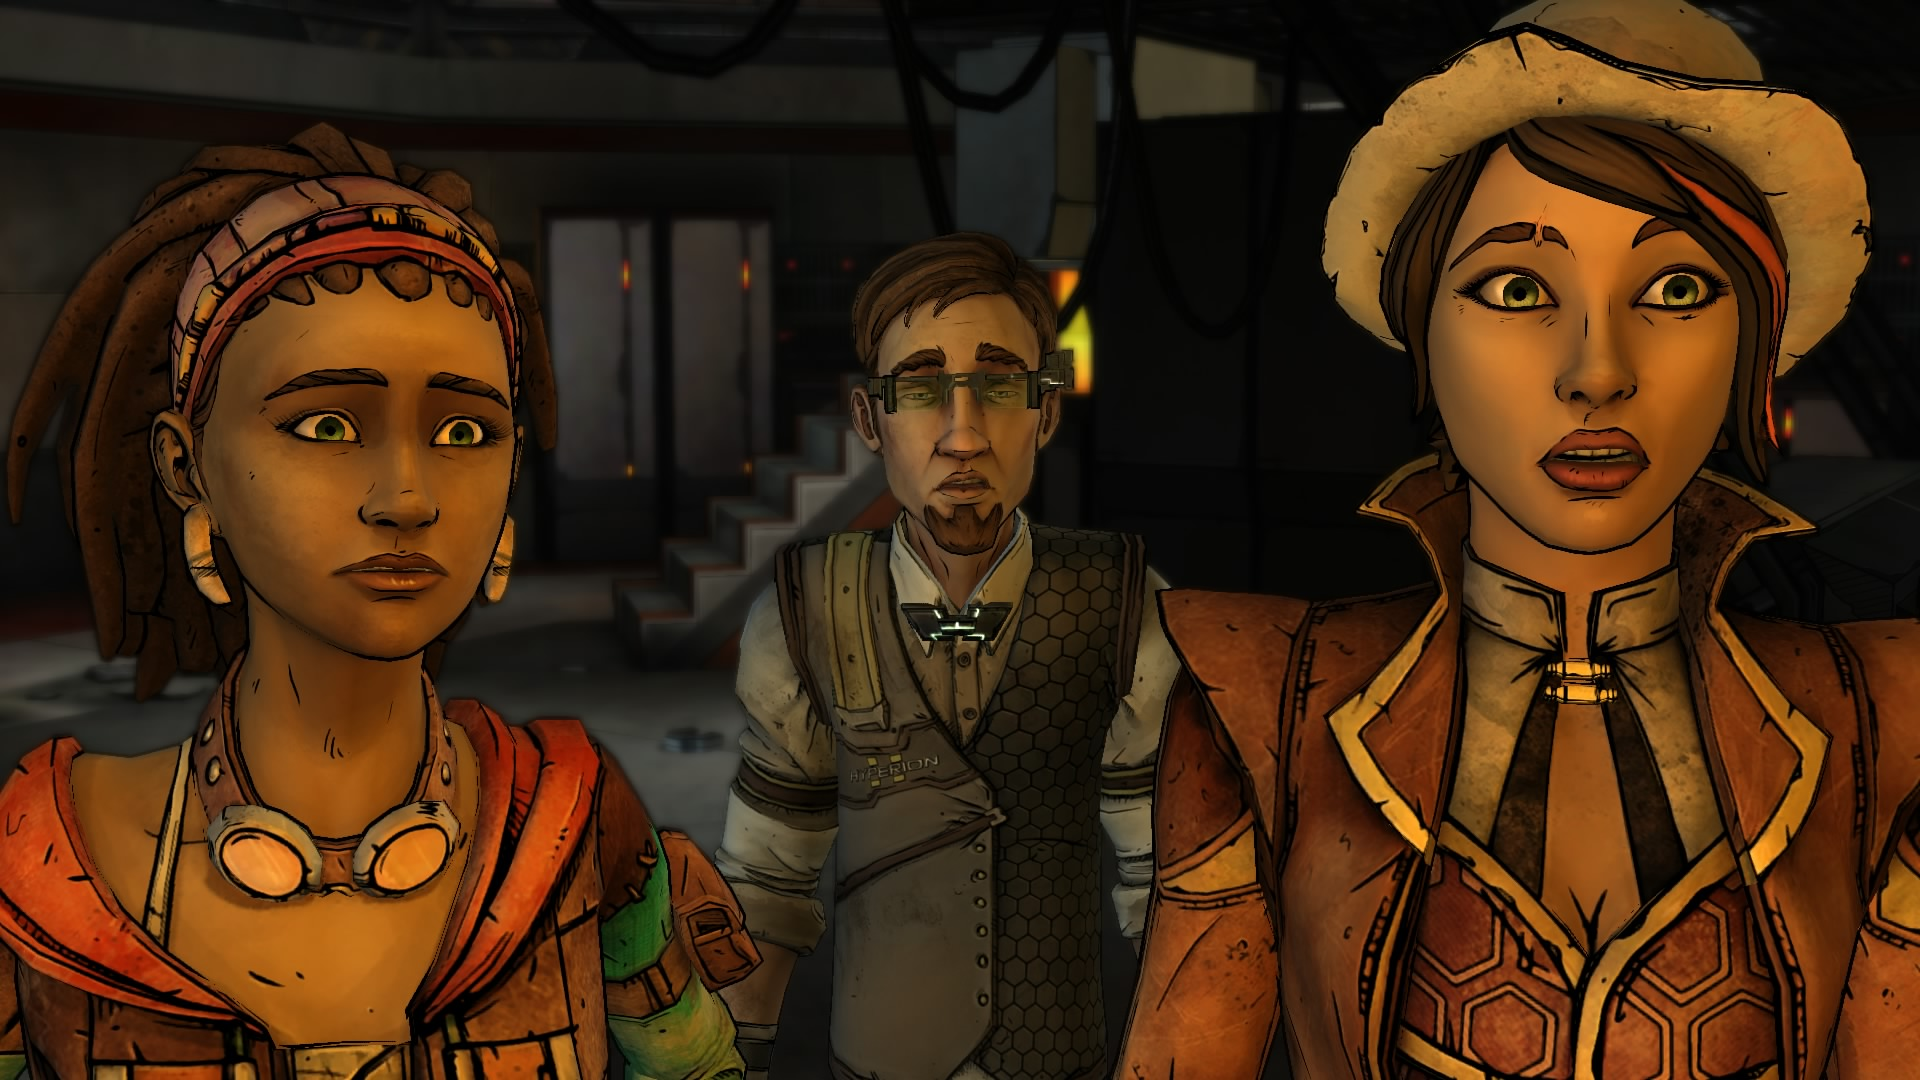 Tales from the Borderlands Ep. 2: Atlas Mugged